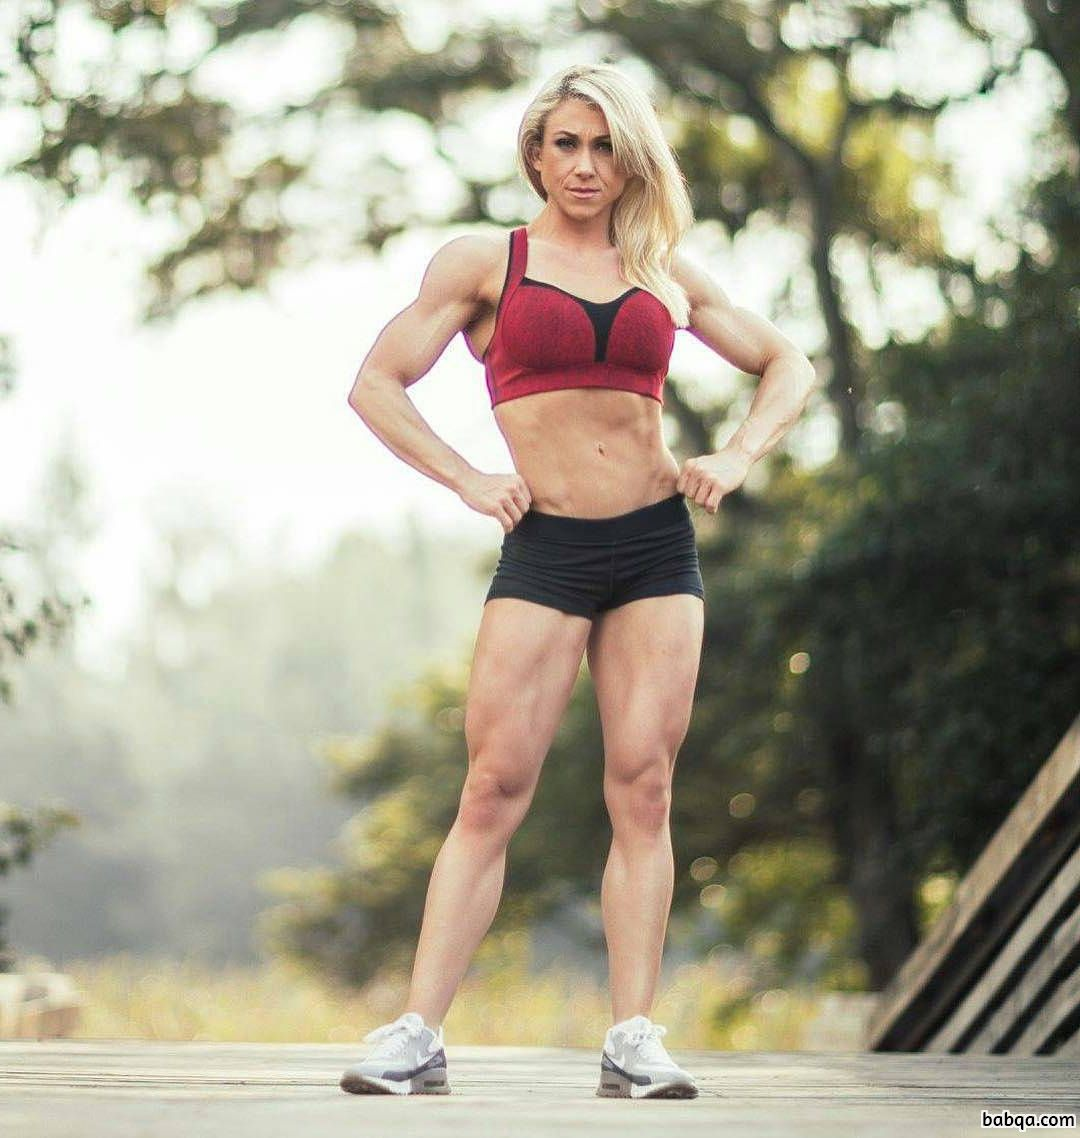 hot female bodybuilder with fitness body and muscle ass picture from linkedin